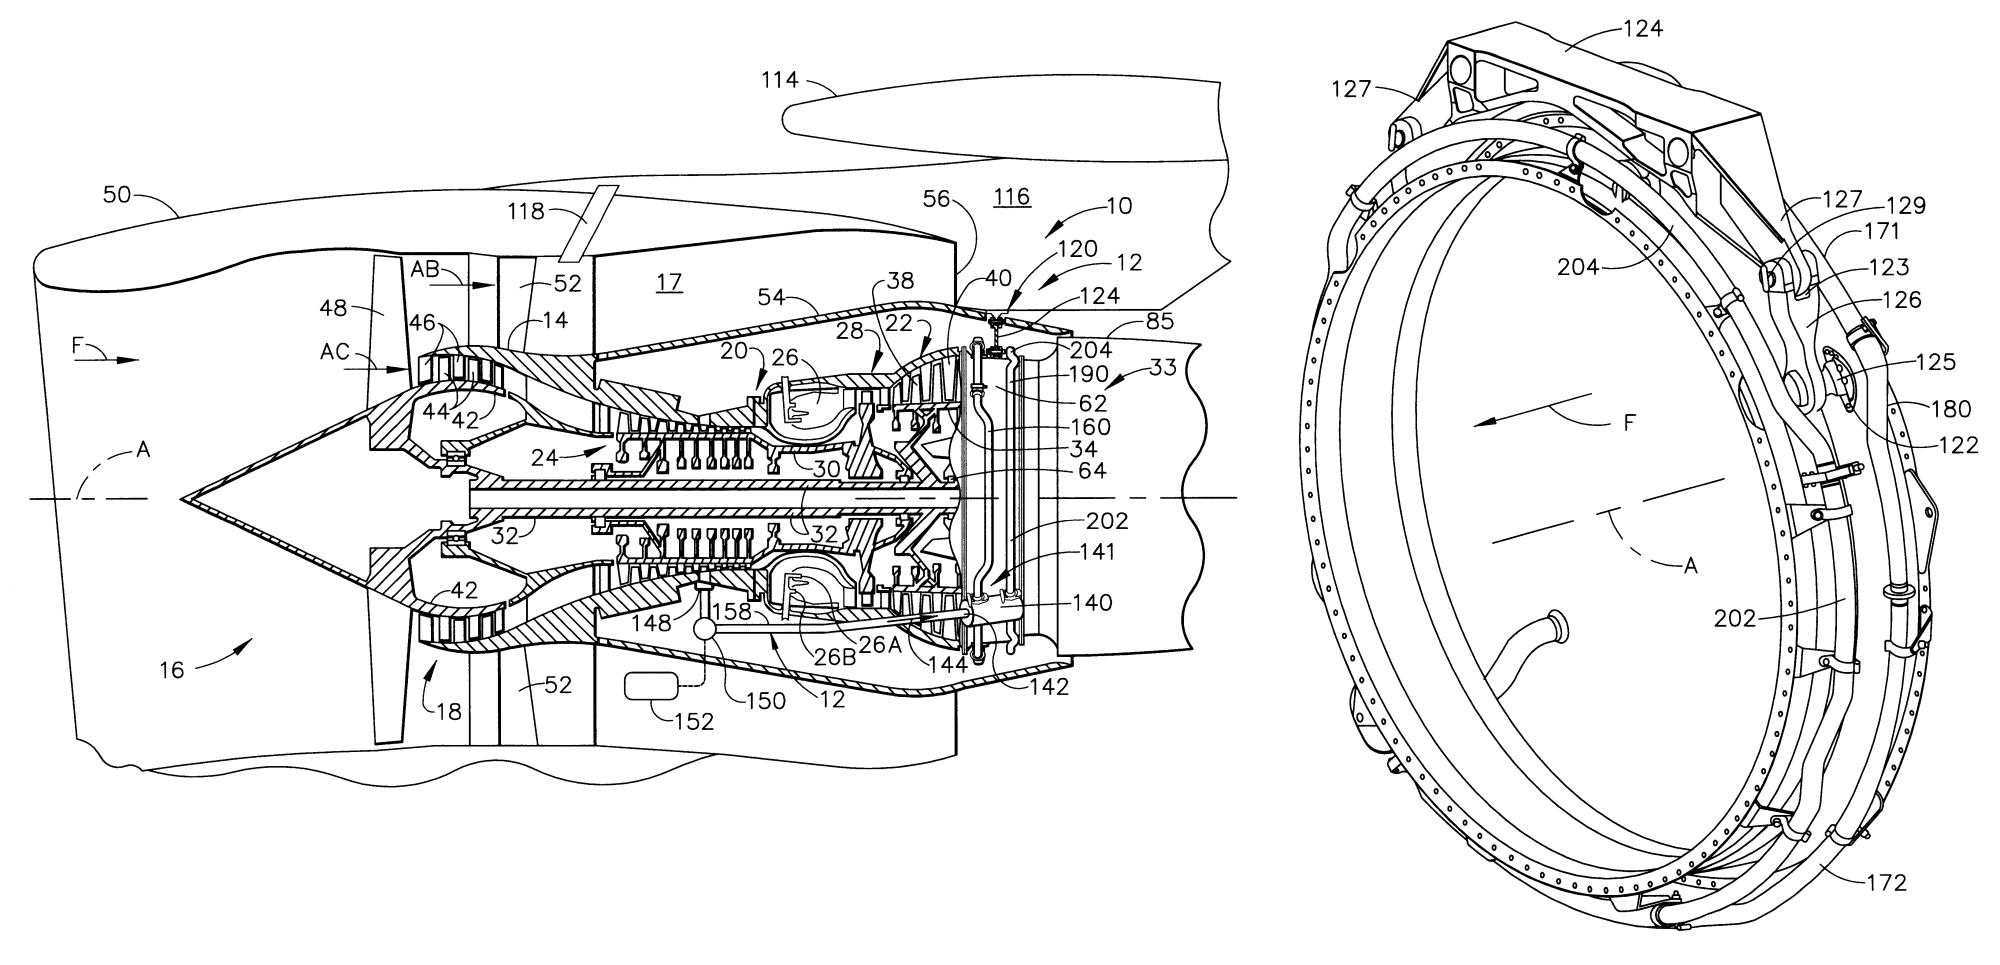 hight resolution of ge cfm 56 engine diagrams parts auto parts catalog and jet engine schematic turbine engine diagram